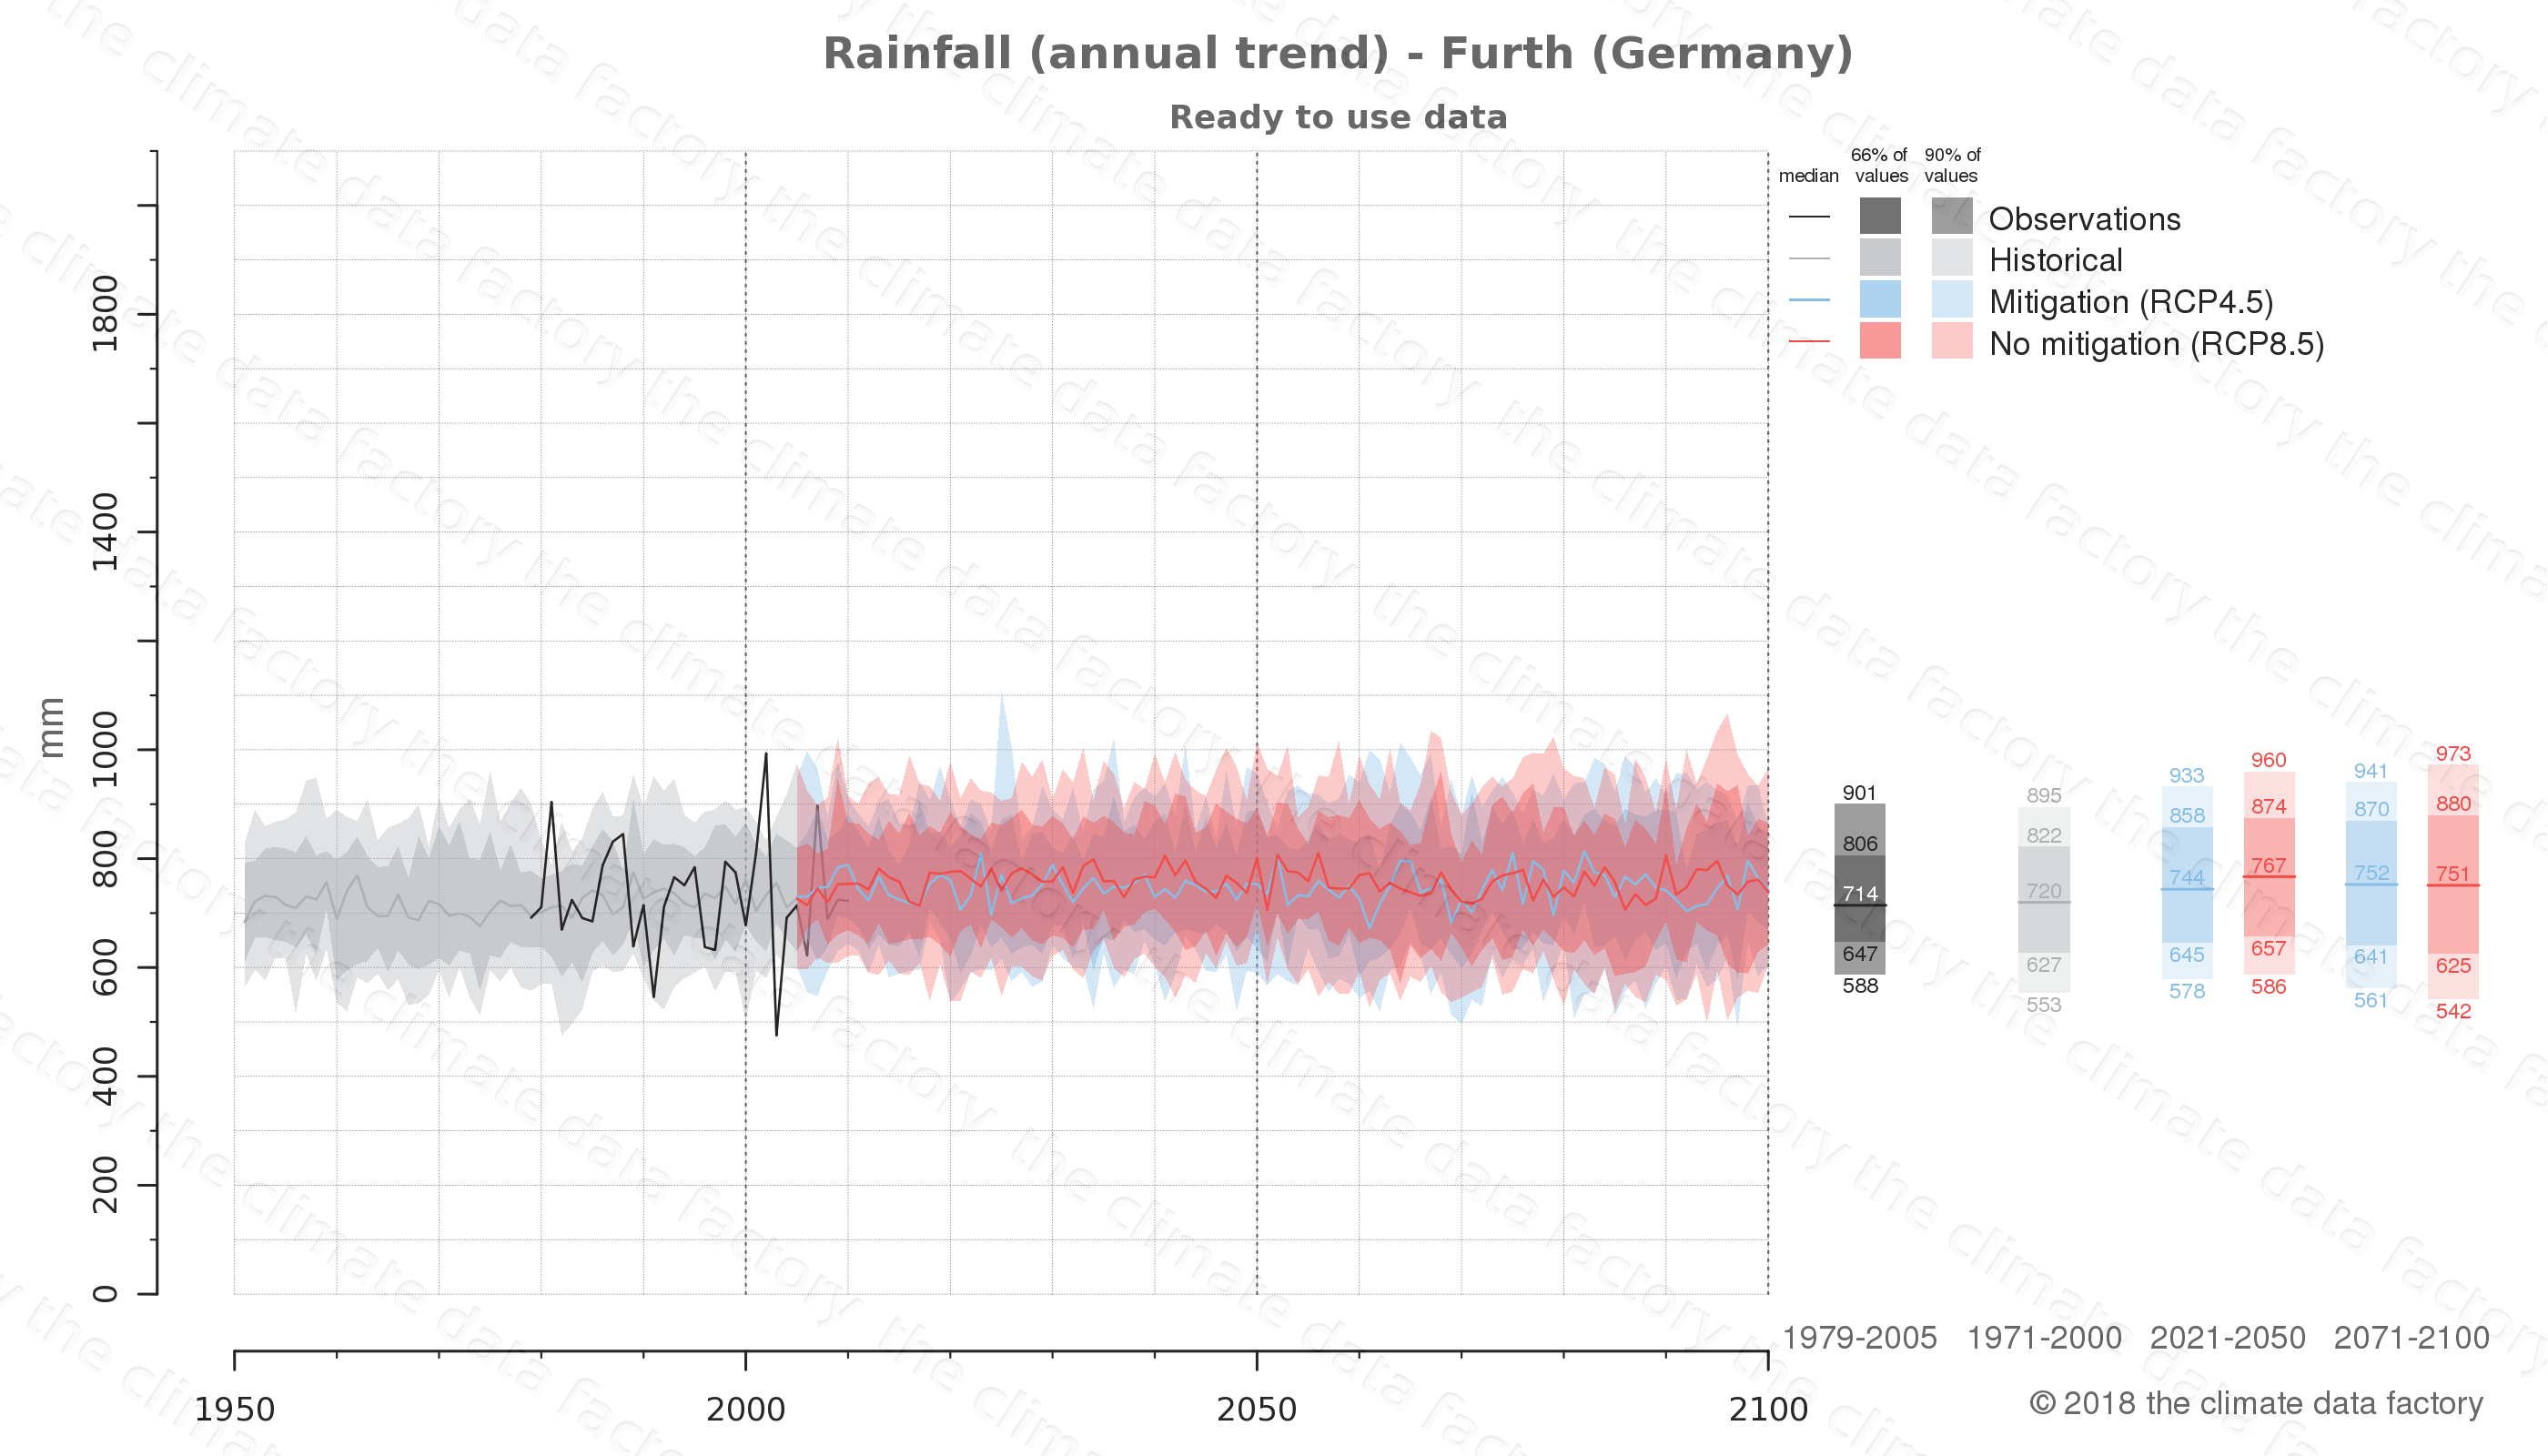 climate change data policy adaptation climate graph city data rainfall furth germany